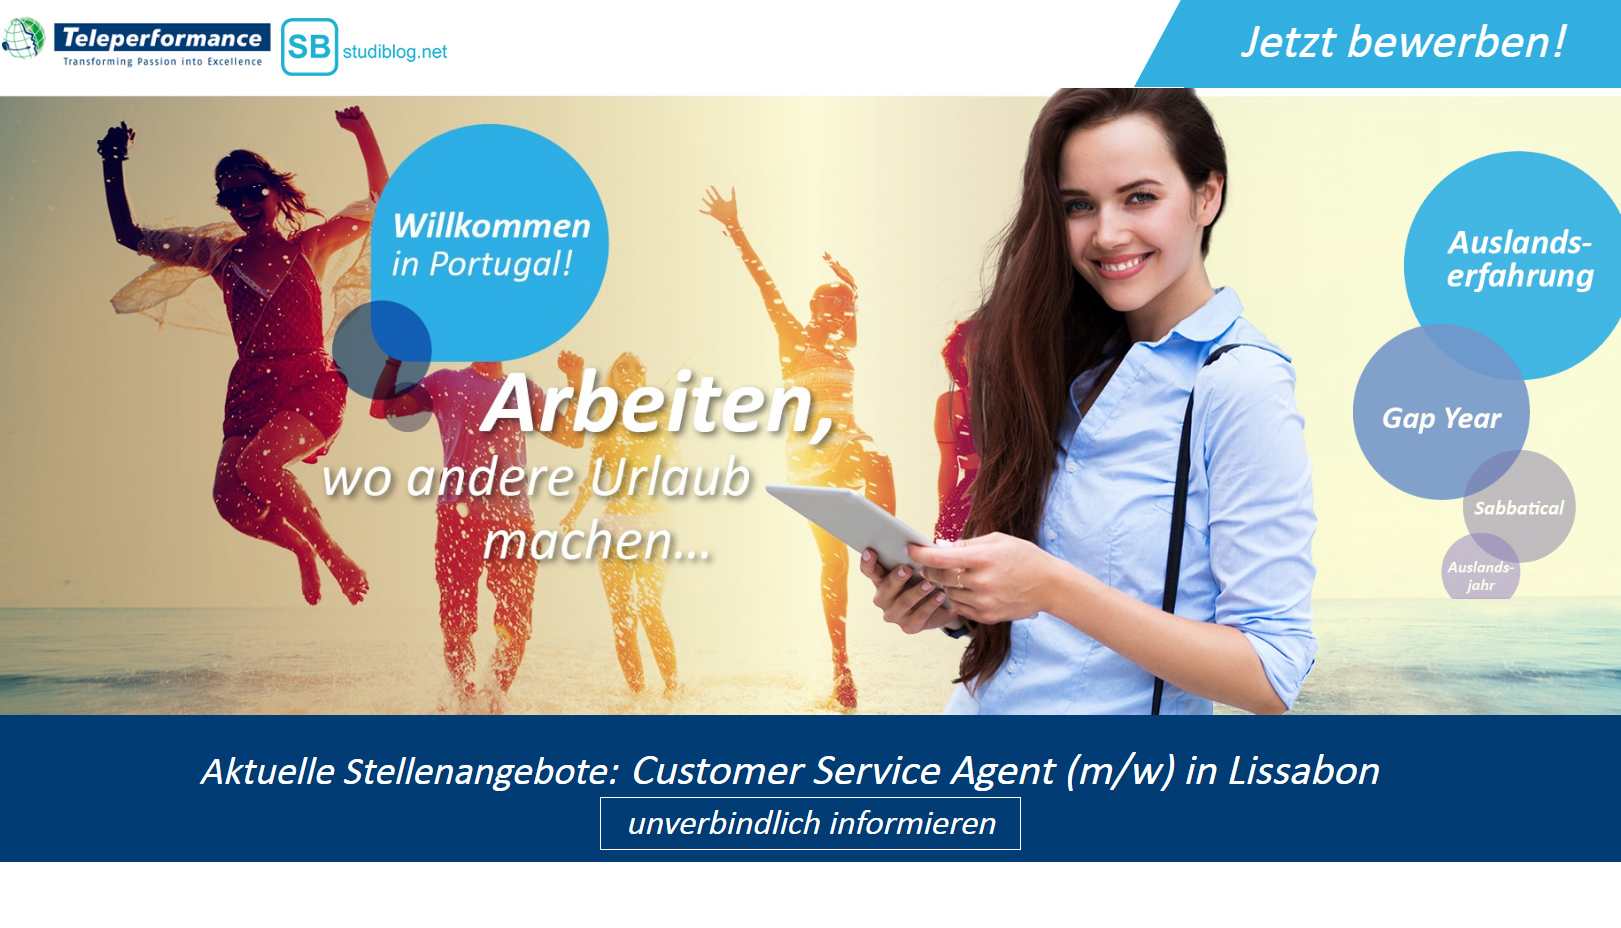 Teleperformance - Arbeiten, wo andere Urlaub machen - Jobangebot Customer Service in Portugal, Lissabon